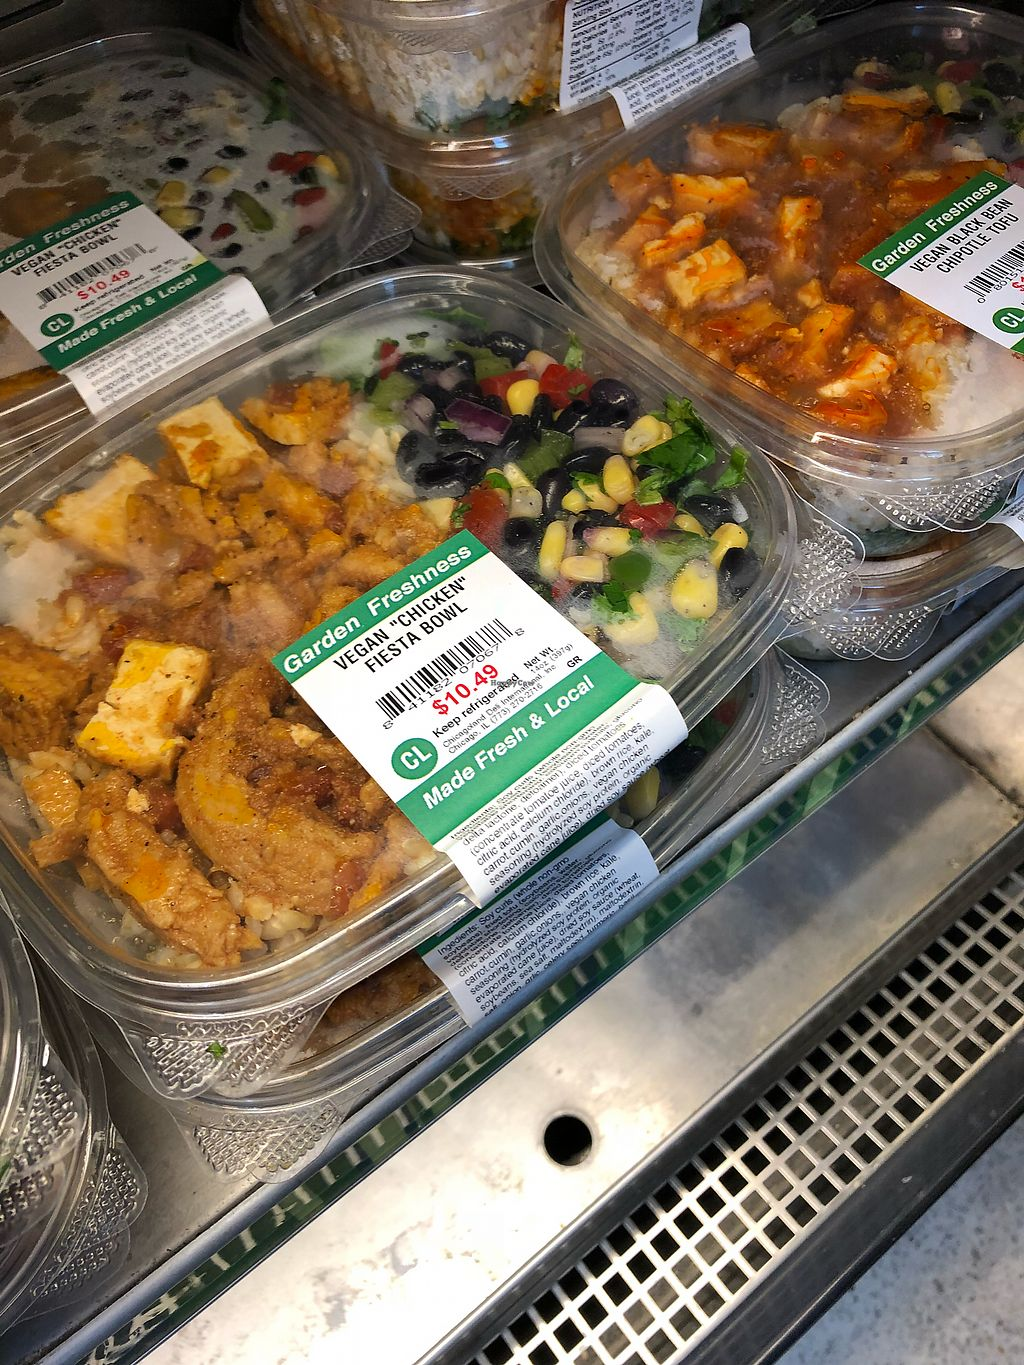 """Photo of Fresh Market on the Go - Airport  by <a href=""""/members/profile/Knauji82"""">Knauji82</a> <br/>Chicken fiesta <br/> April 18, 2018  - <a href='/contact/abuse/image/105152/387422'>Report</a>"""